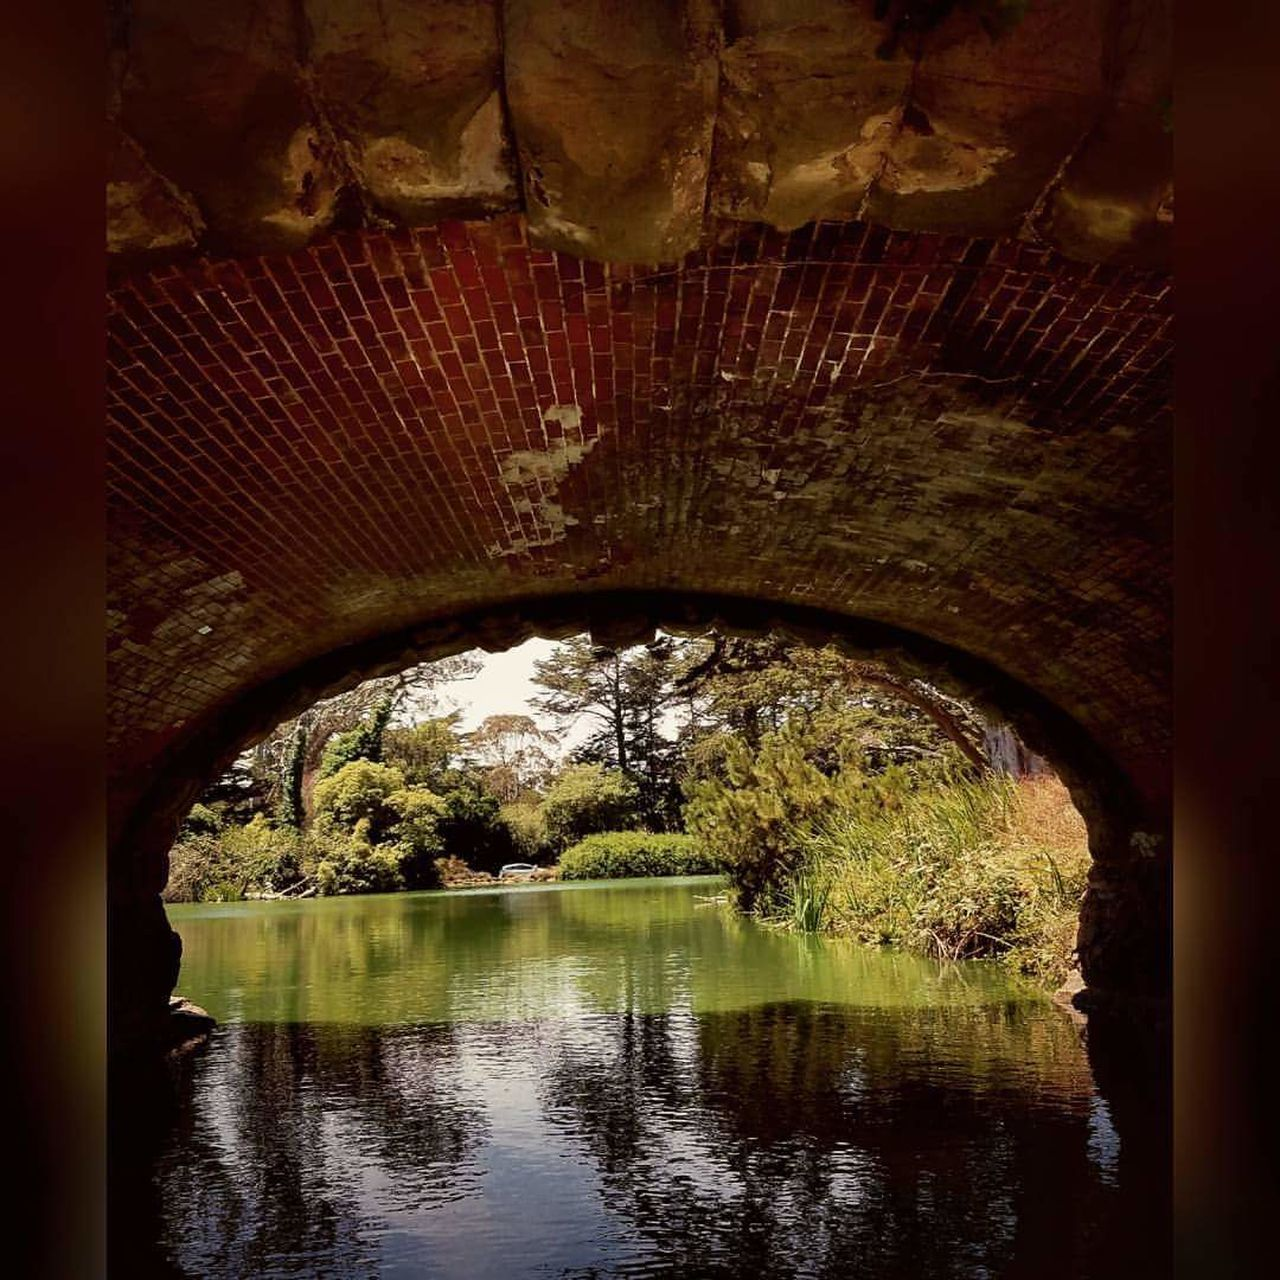 reflection, arch, bridge - man made structure, connection, water, architecture, day, built structure, no people, outdoors, tree, nature, sky